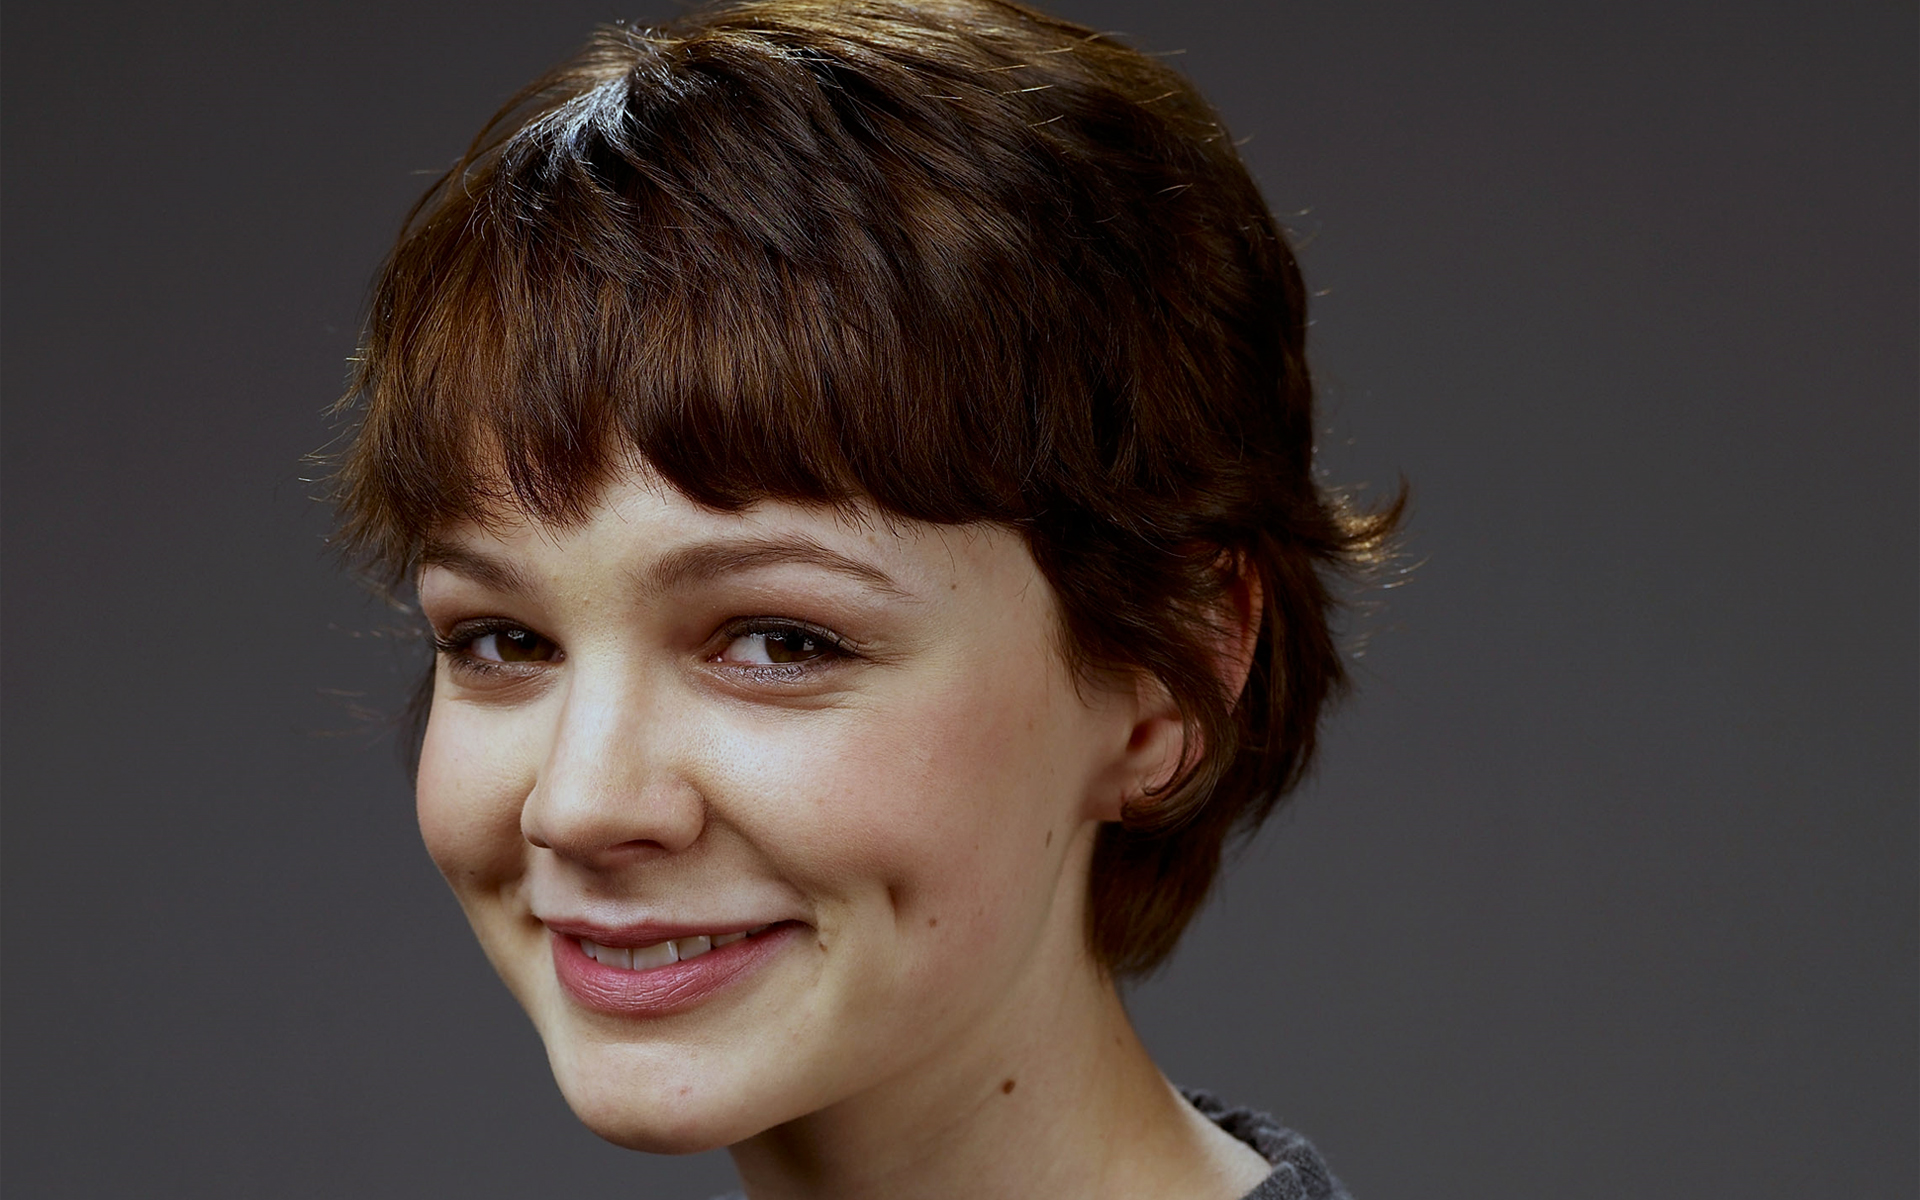 Carey Mulligan, Bill Nighy in London Revival of David Hare's 'Skylight' : Classicalite